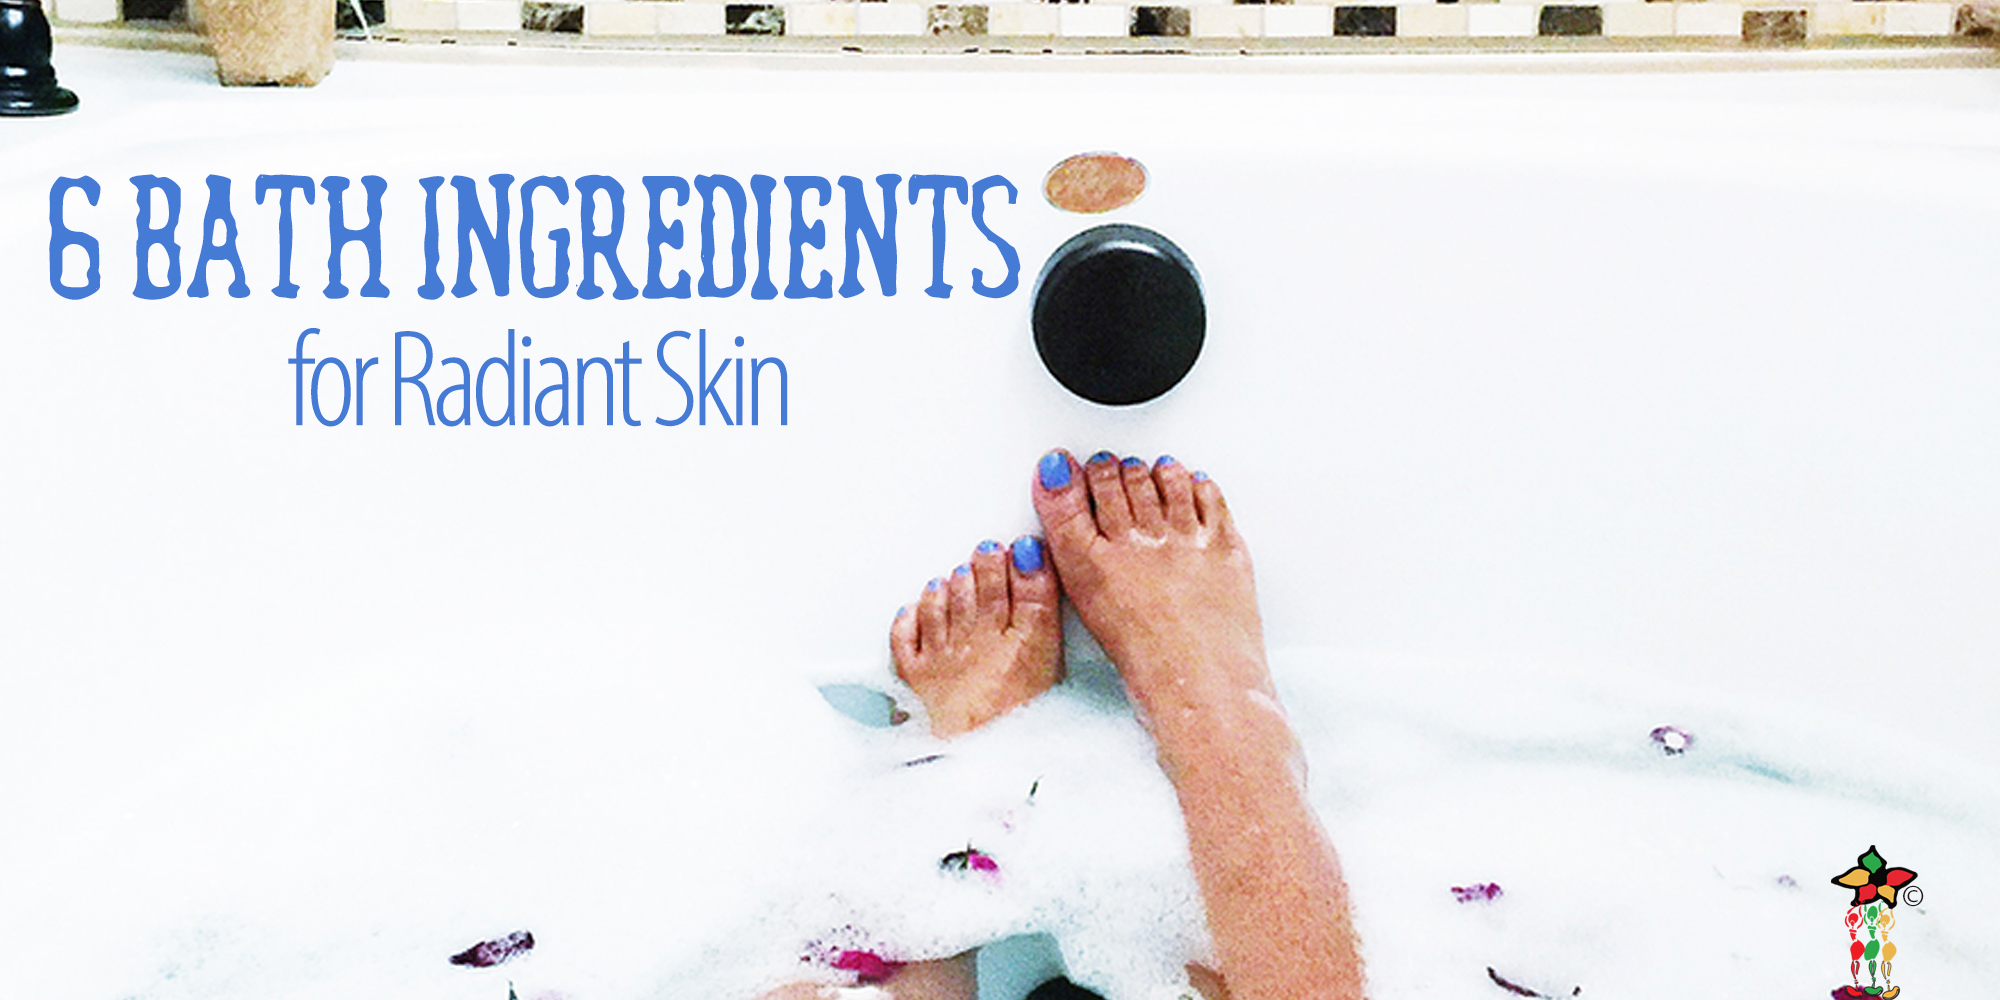 6bathingredients